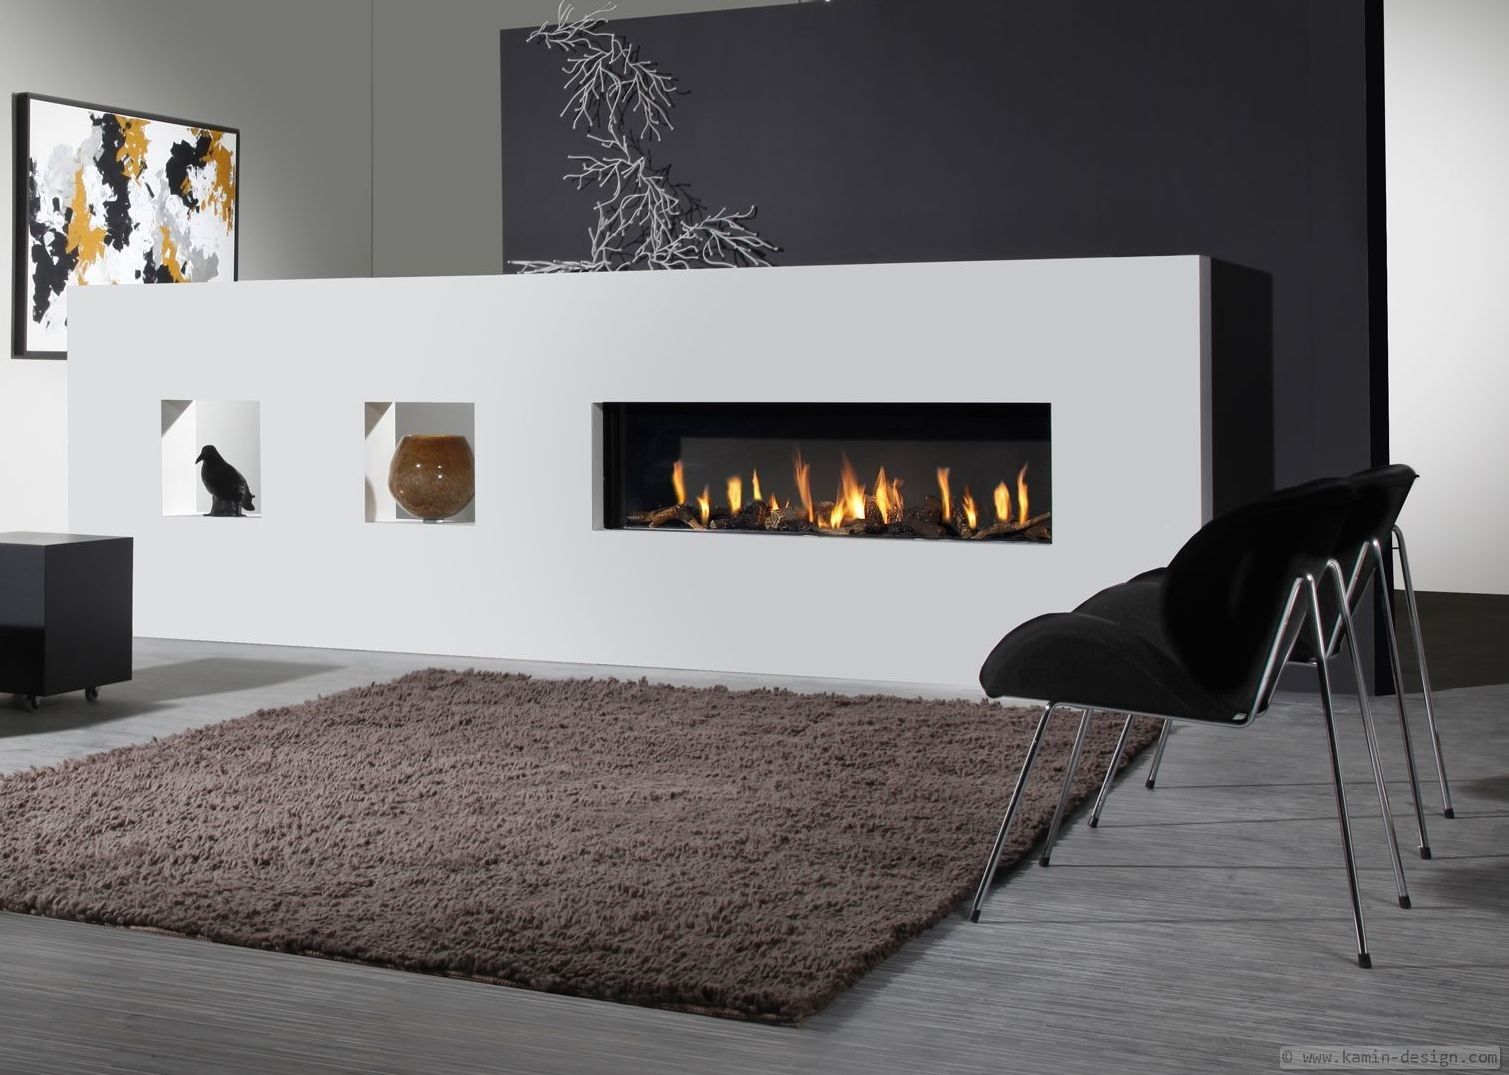 sonderanfertigung raumteilerkamin als elektrokamin oder. Black Bedroom Furniture Sets. Home Design Ideas